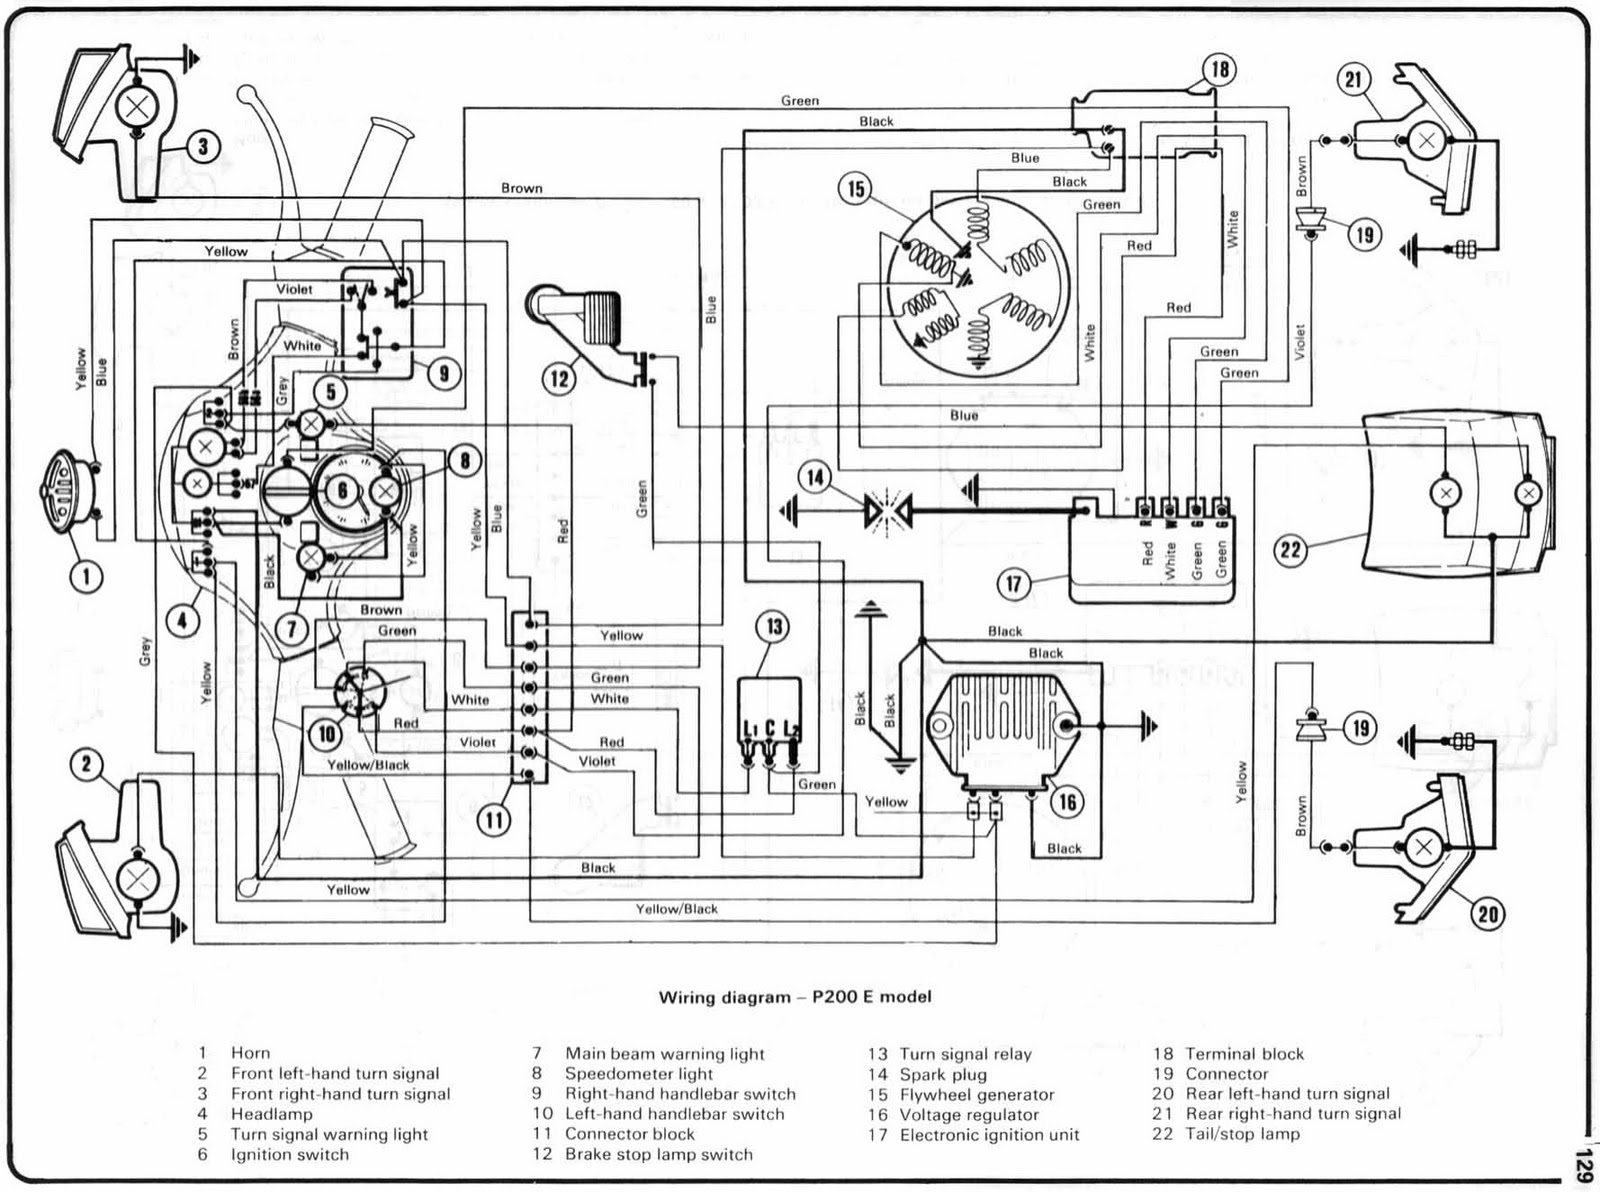 Vespa Wiring Schematic Diagram Will Be A Thing Of House Diagrams 911 P200 E Model